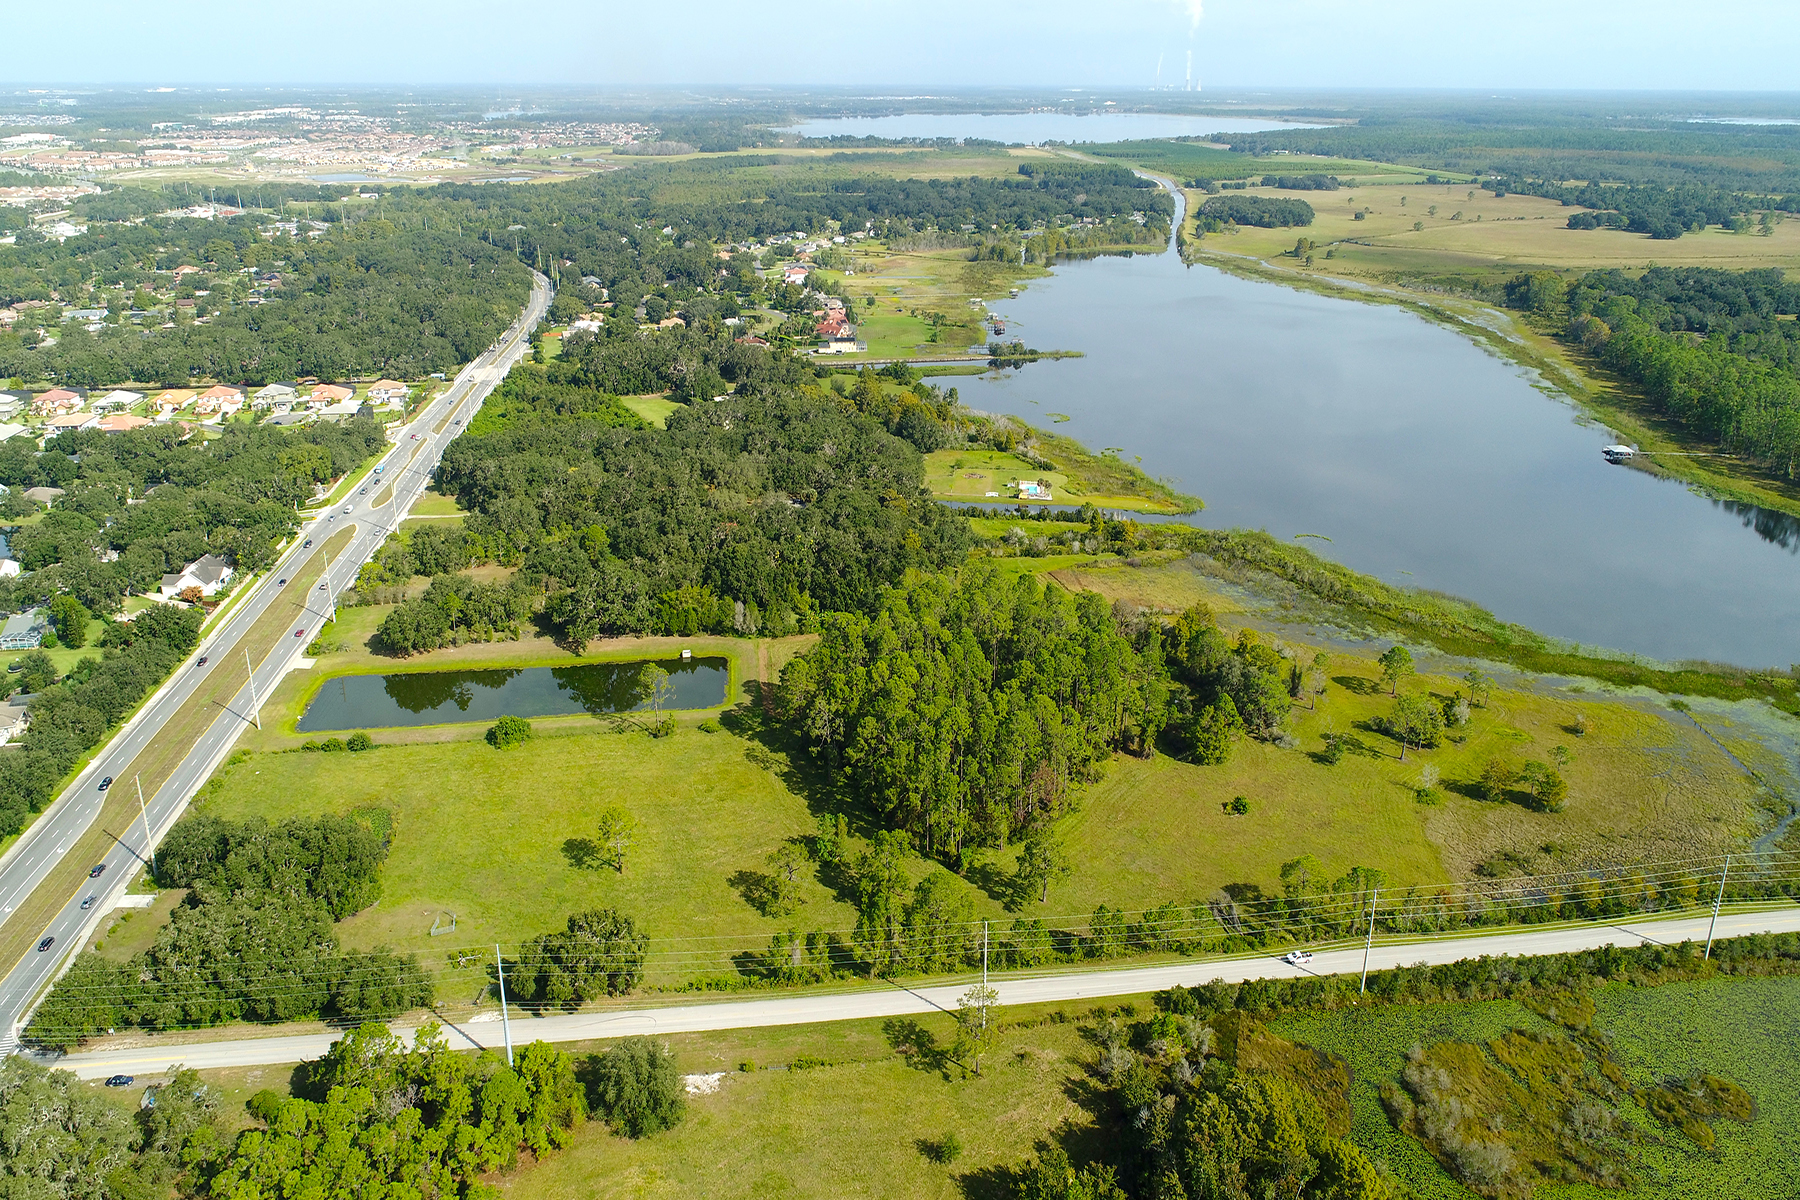 Land for Sale at SAINT CLOUD-ORLANDO 10645 N Narcoossee Rd Rd St. Cloud, Florida 34771 United States